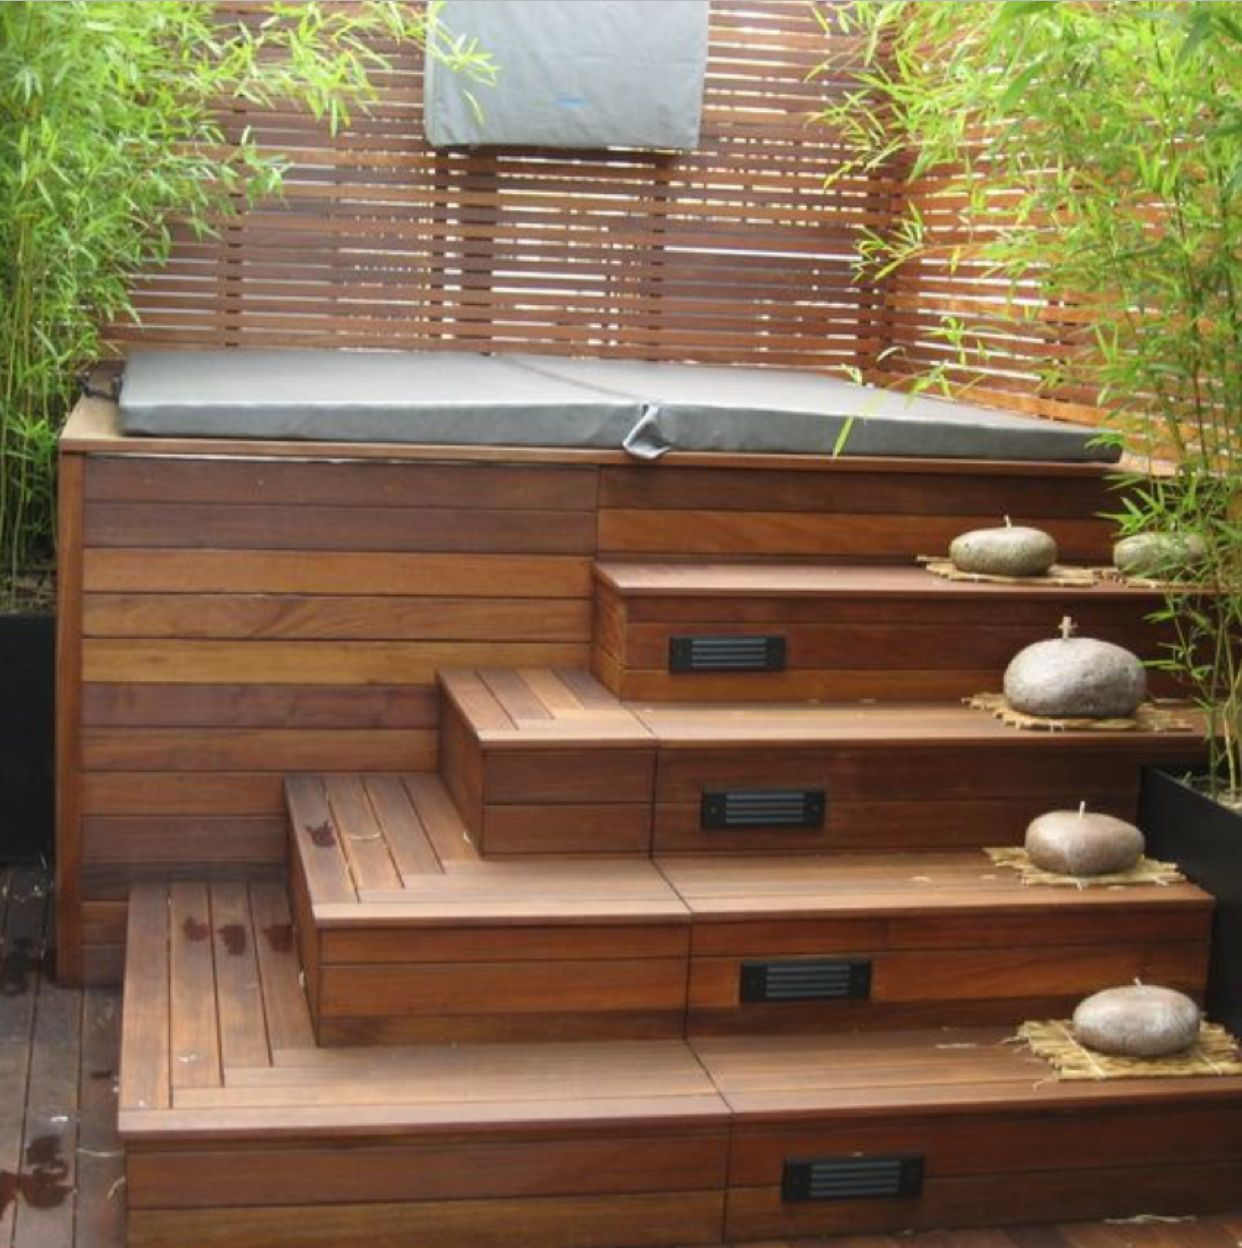 Spa Exterieur Enterré Pin Van Queen Op Home Decor In 2018 Pinterest Jacuzzi